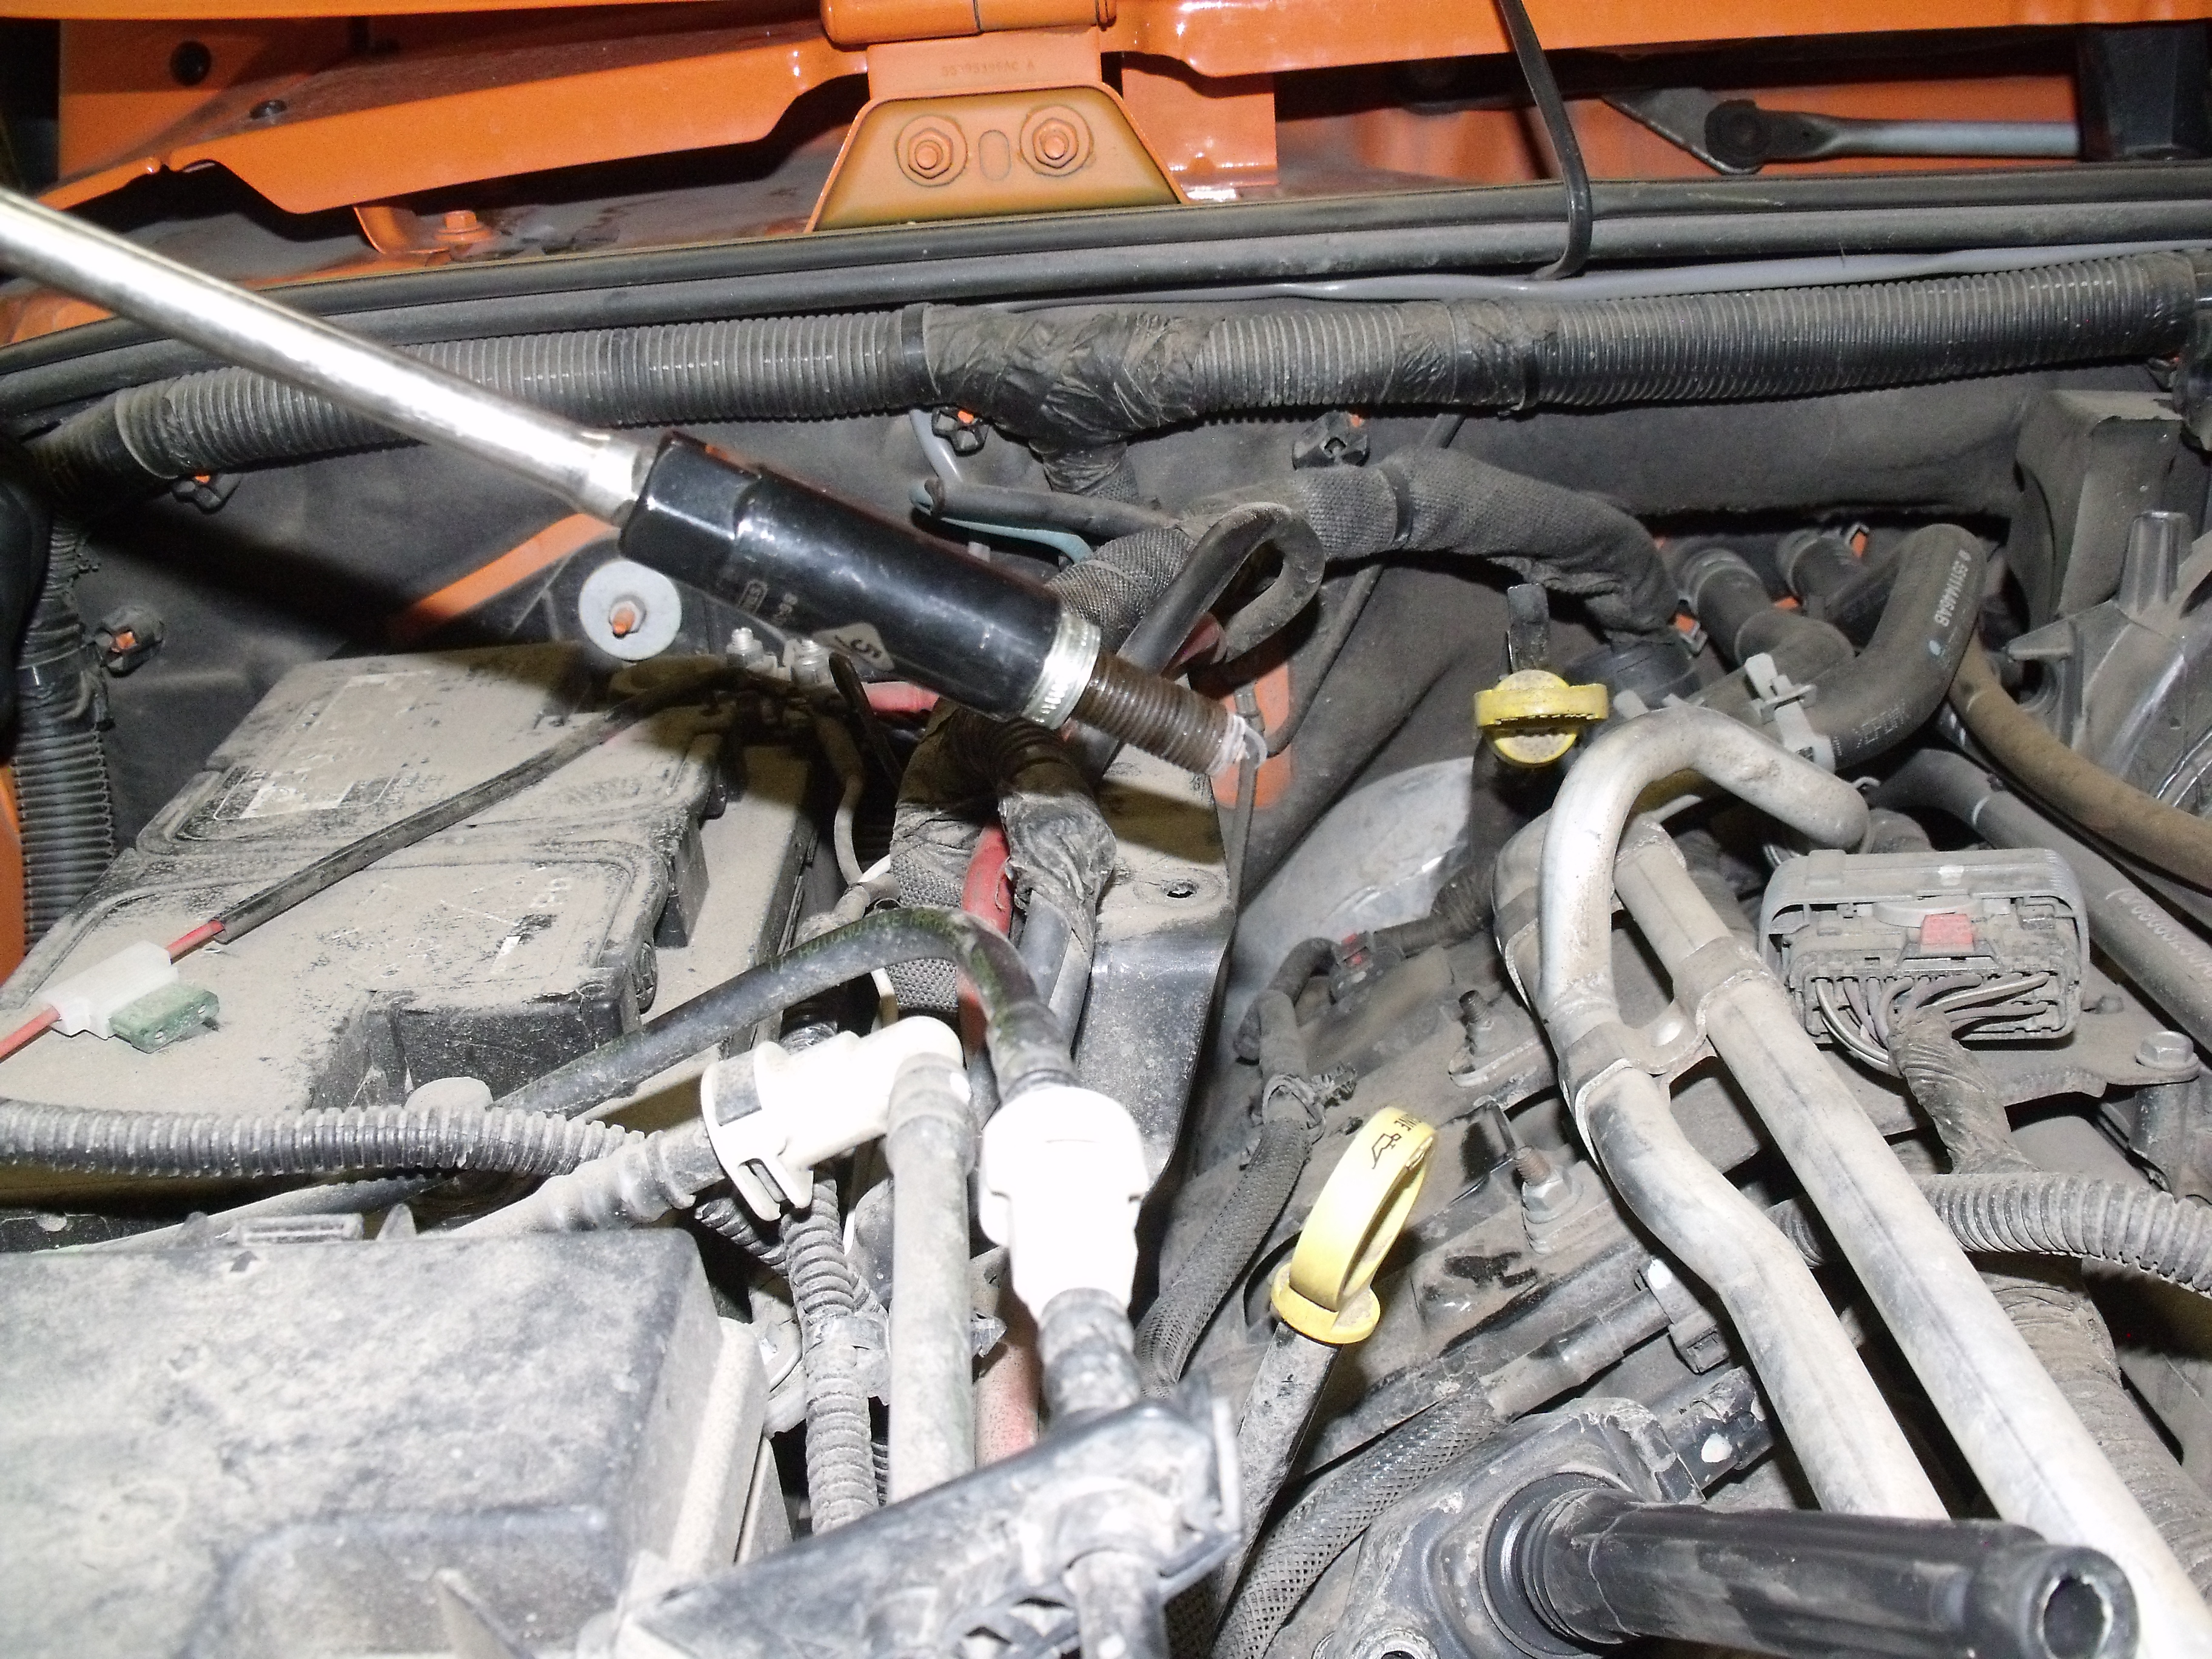 Jeep Wrangler Jk 2007 To 2015 How Replace Spark Plugs Forum 2013 Engine Wire Harness Figure 13 Plug Removed